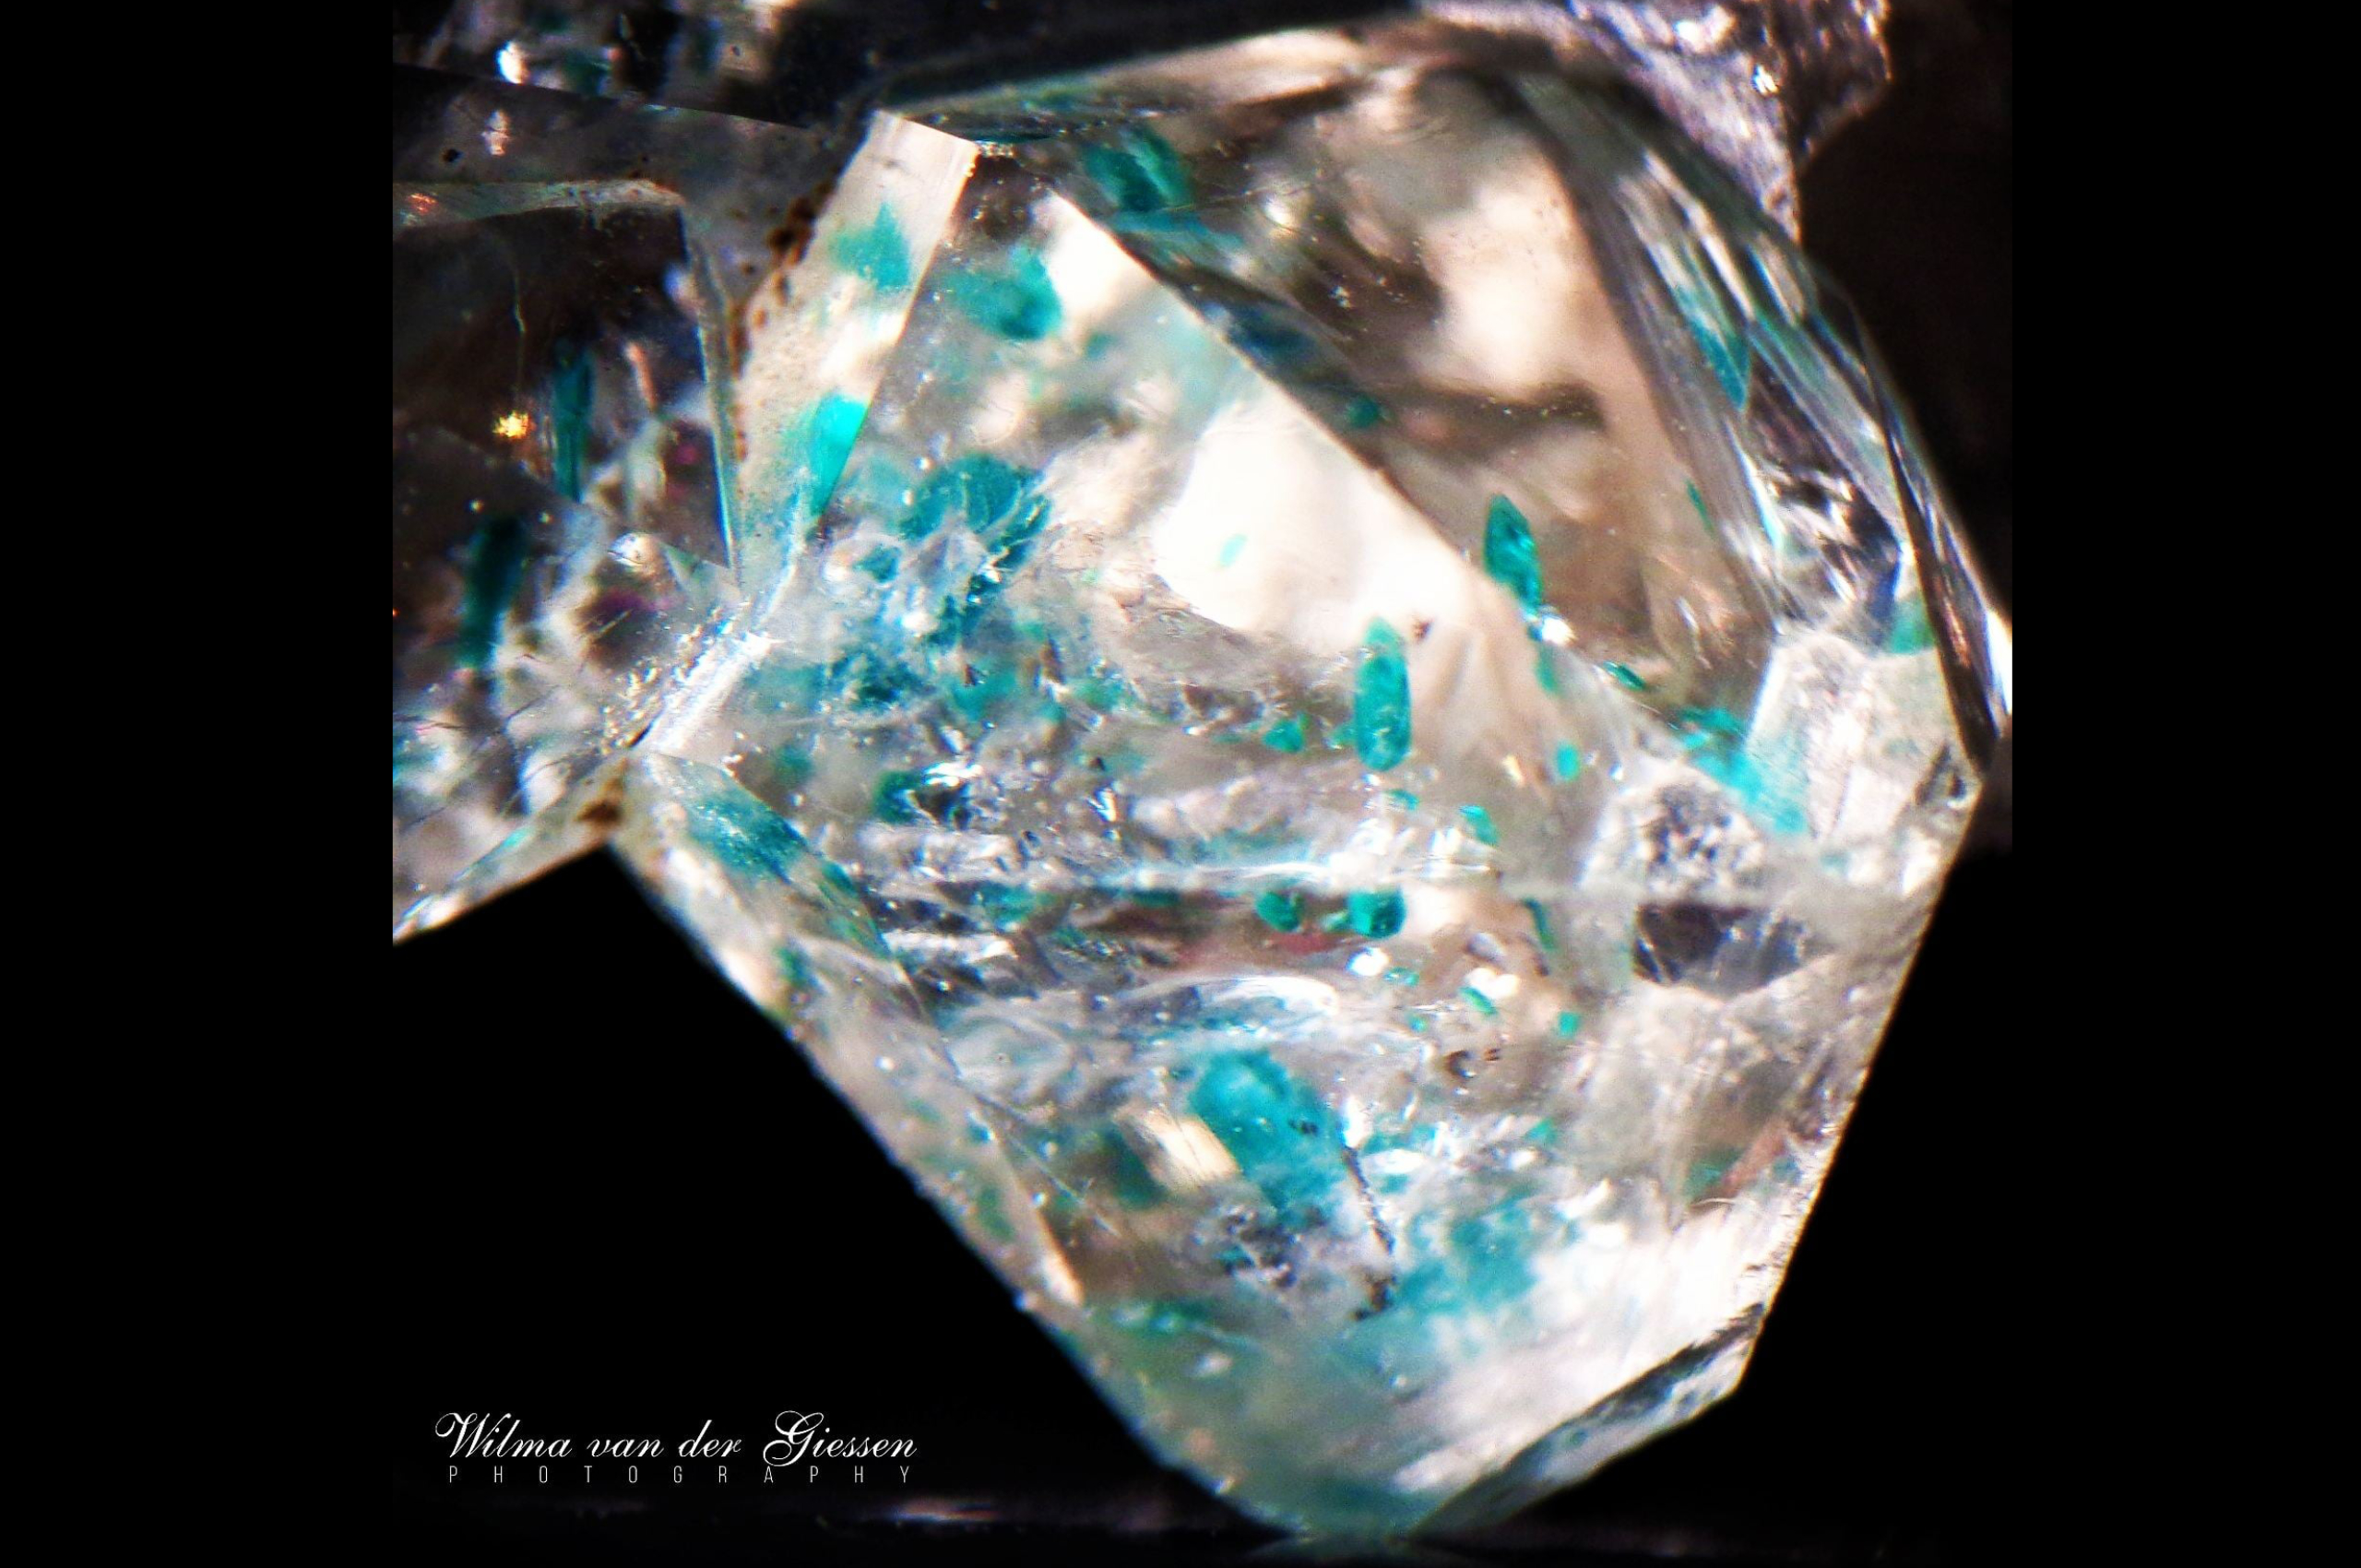 Dioptase and some Shattuckite in quartz from Tsumeb,SWA_. Photo by Wilma van der Giessen